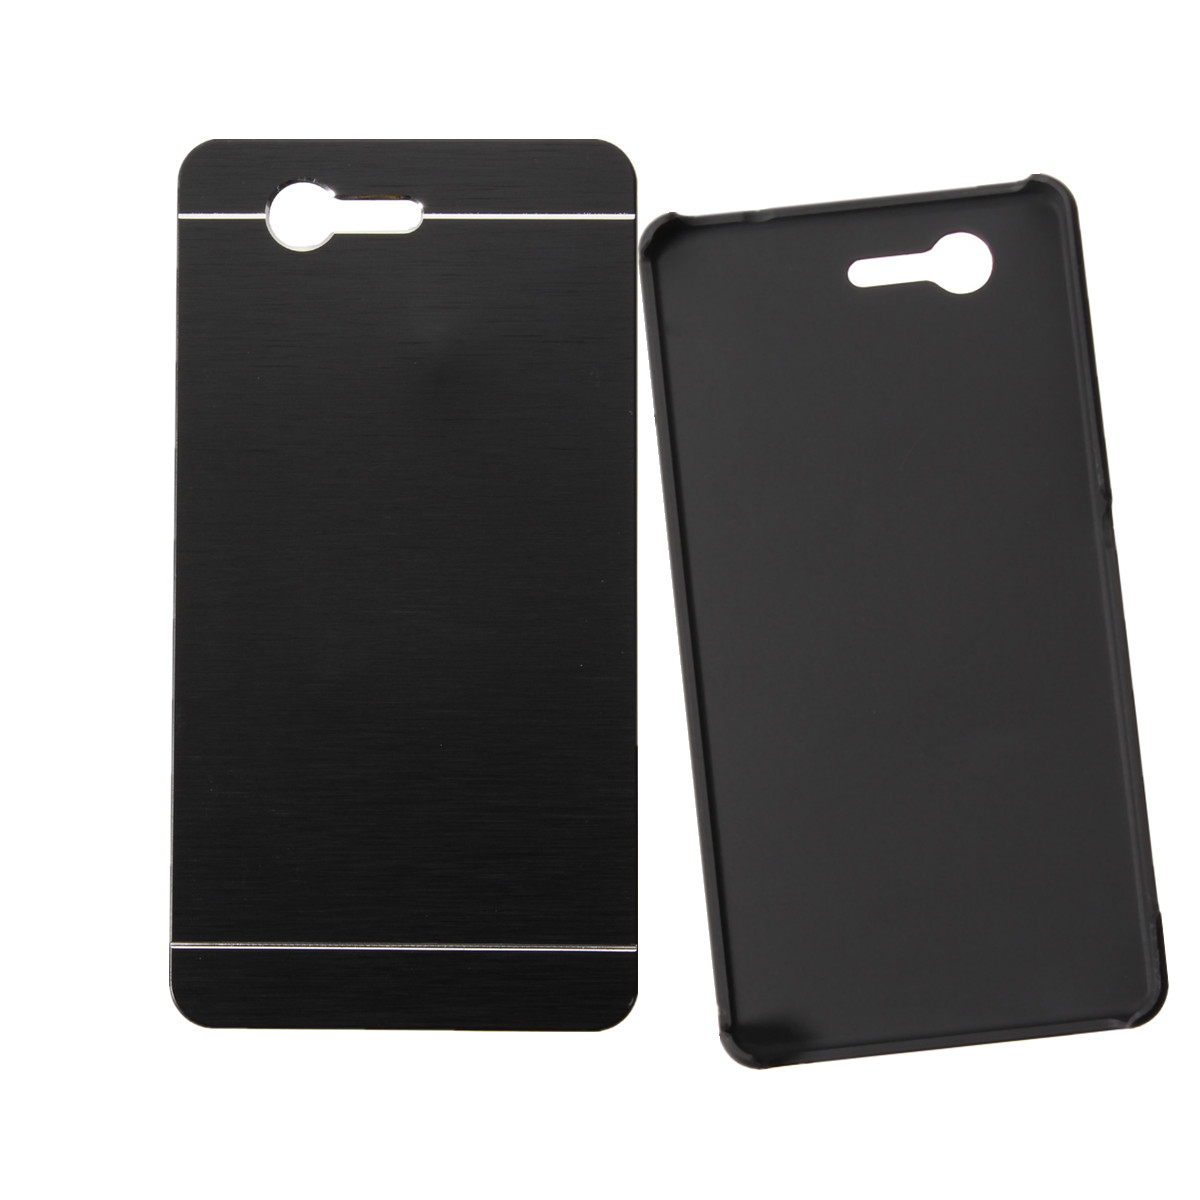 ※Brushed※ Aluminum Metal Hard Cover Case For Sony Xperia Z3 Compact/Mini D5803